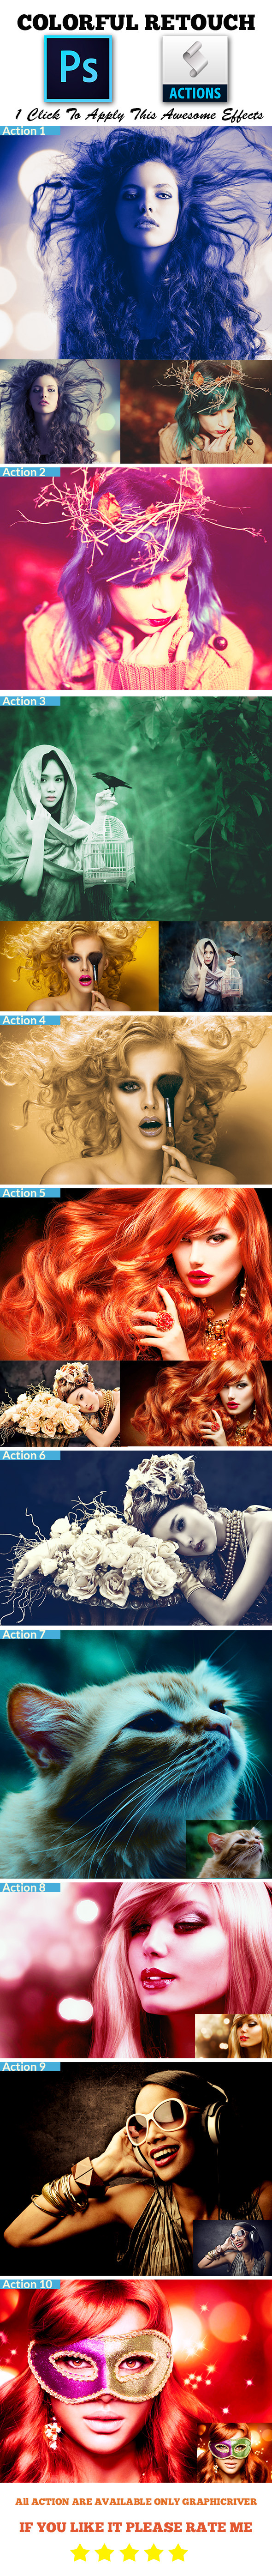 GraphicRiver Colorful Retouch Photoshop Action 8988077